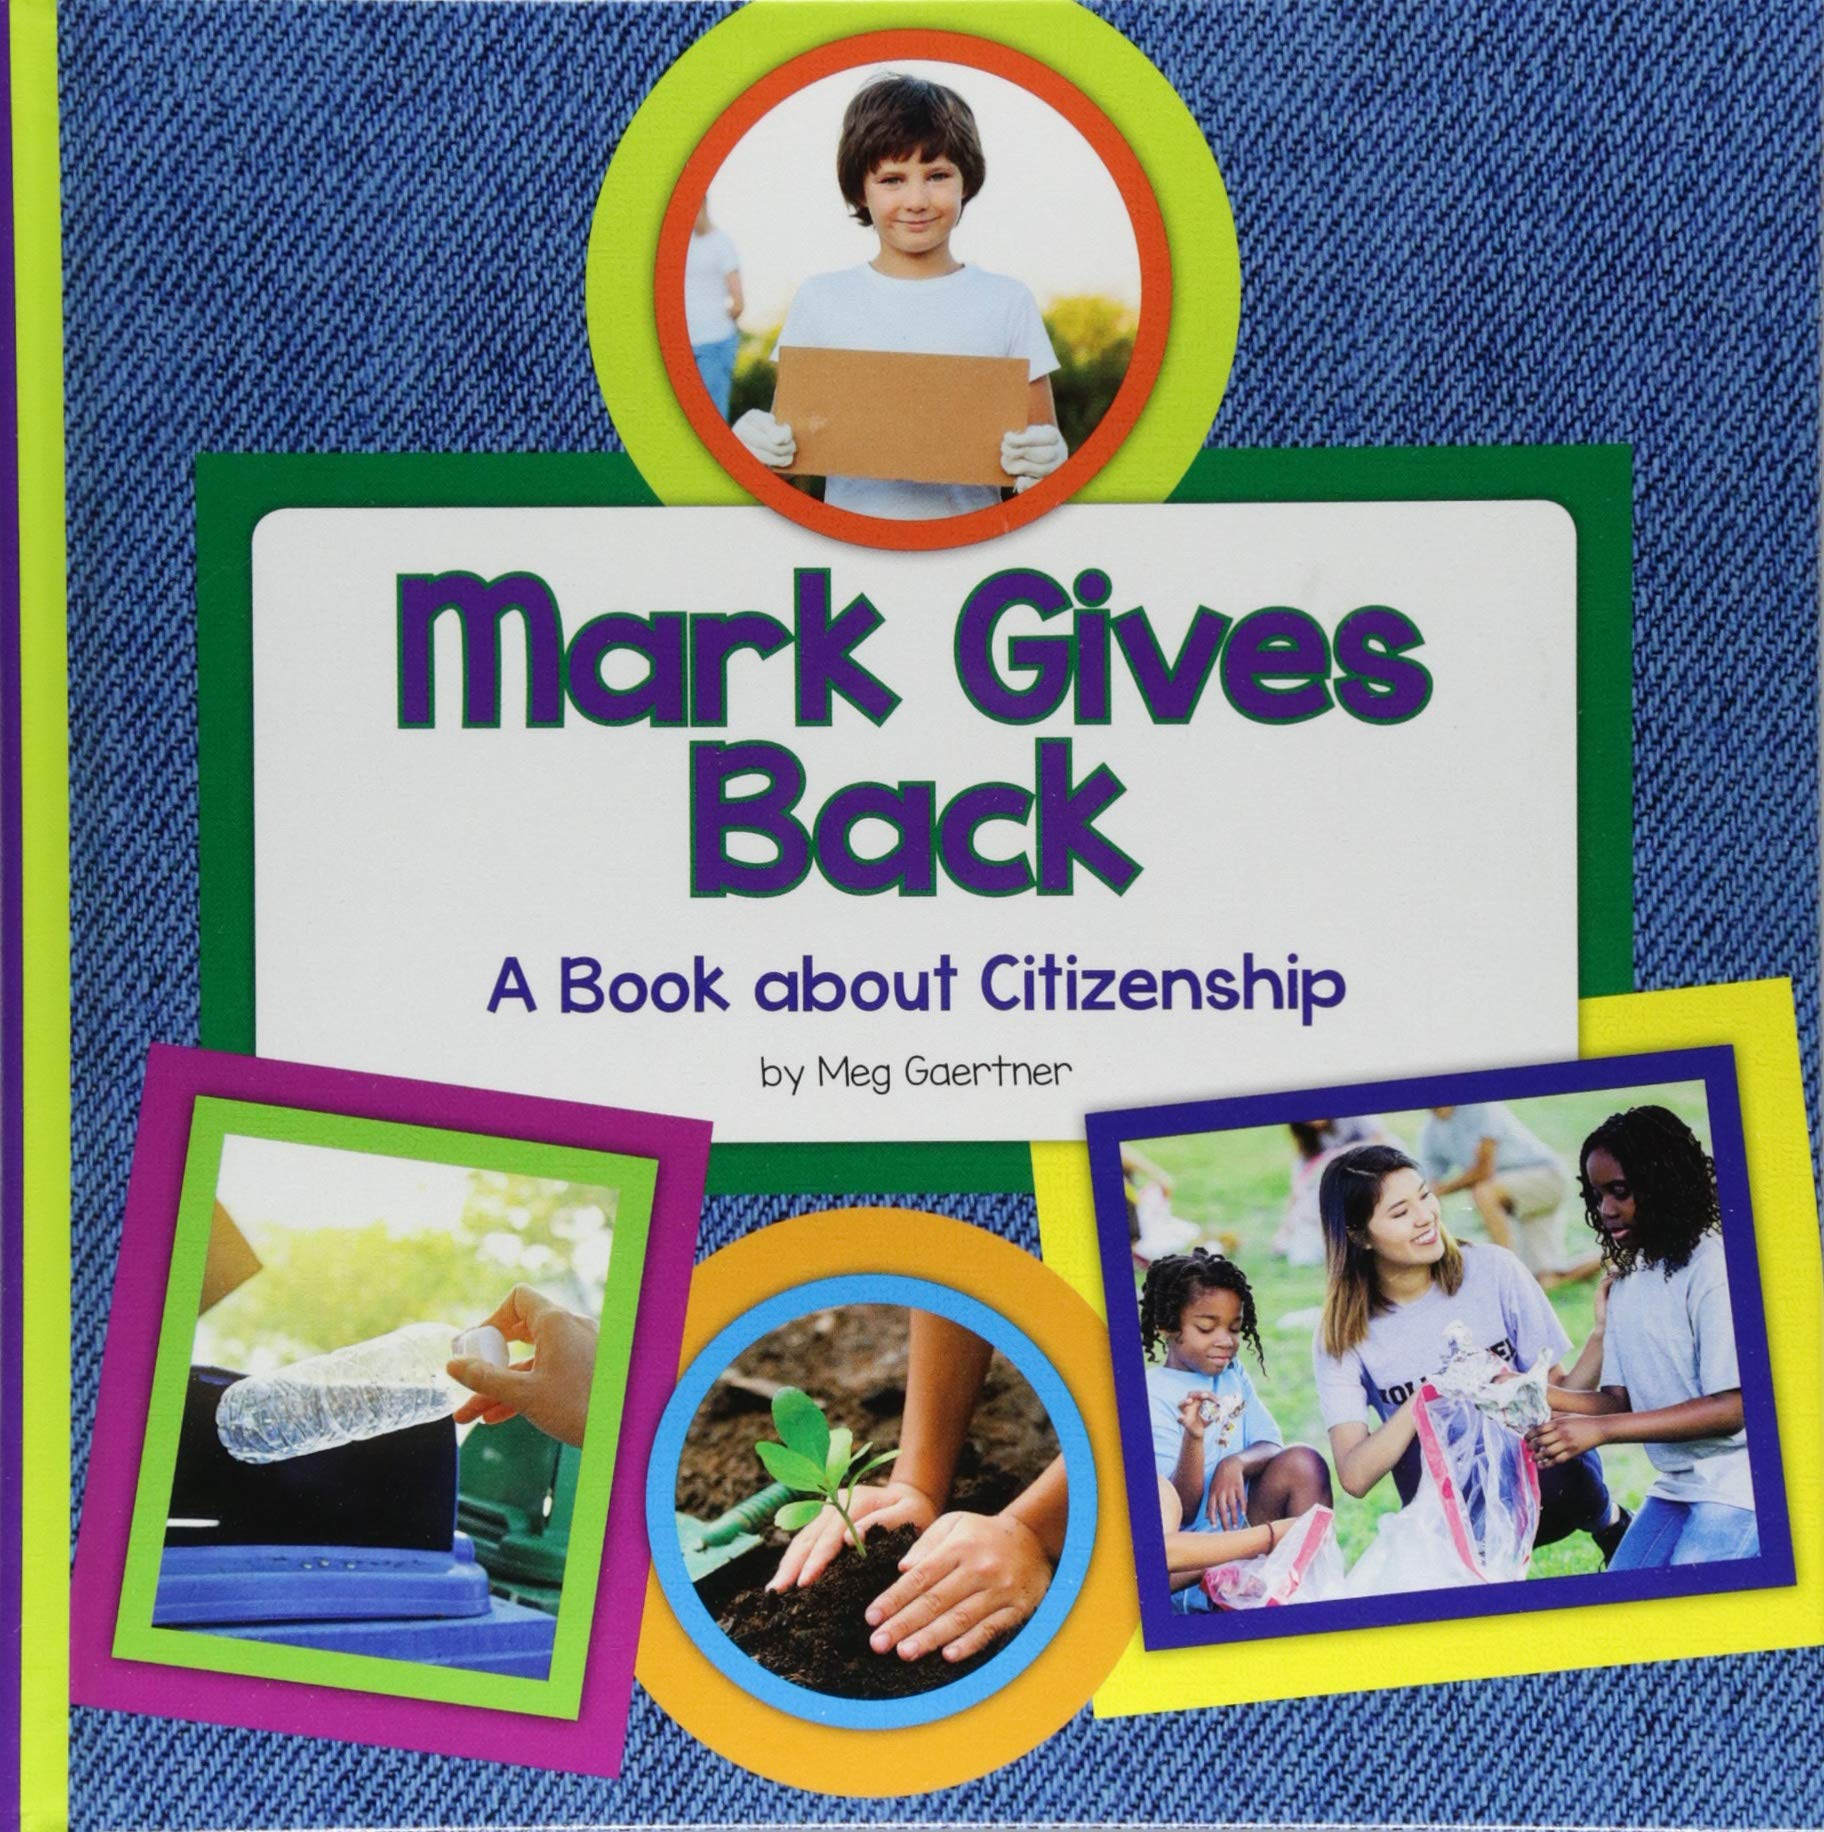 Mark Gives Back: A Book About Citizenship (My Day Learning Social Studies)